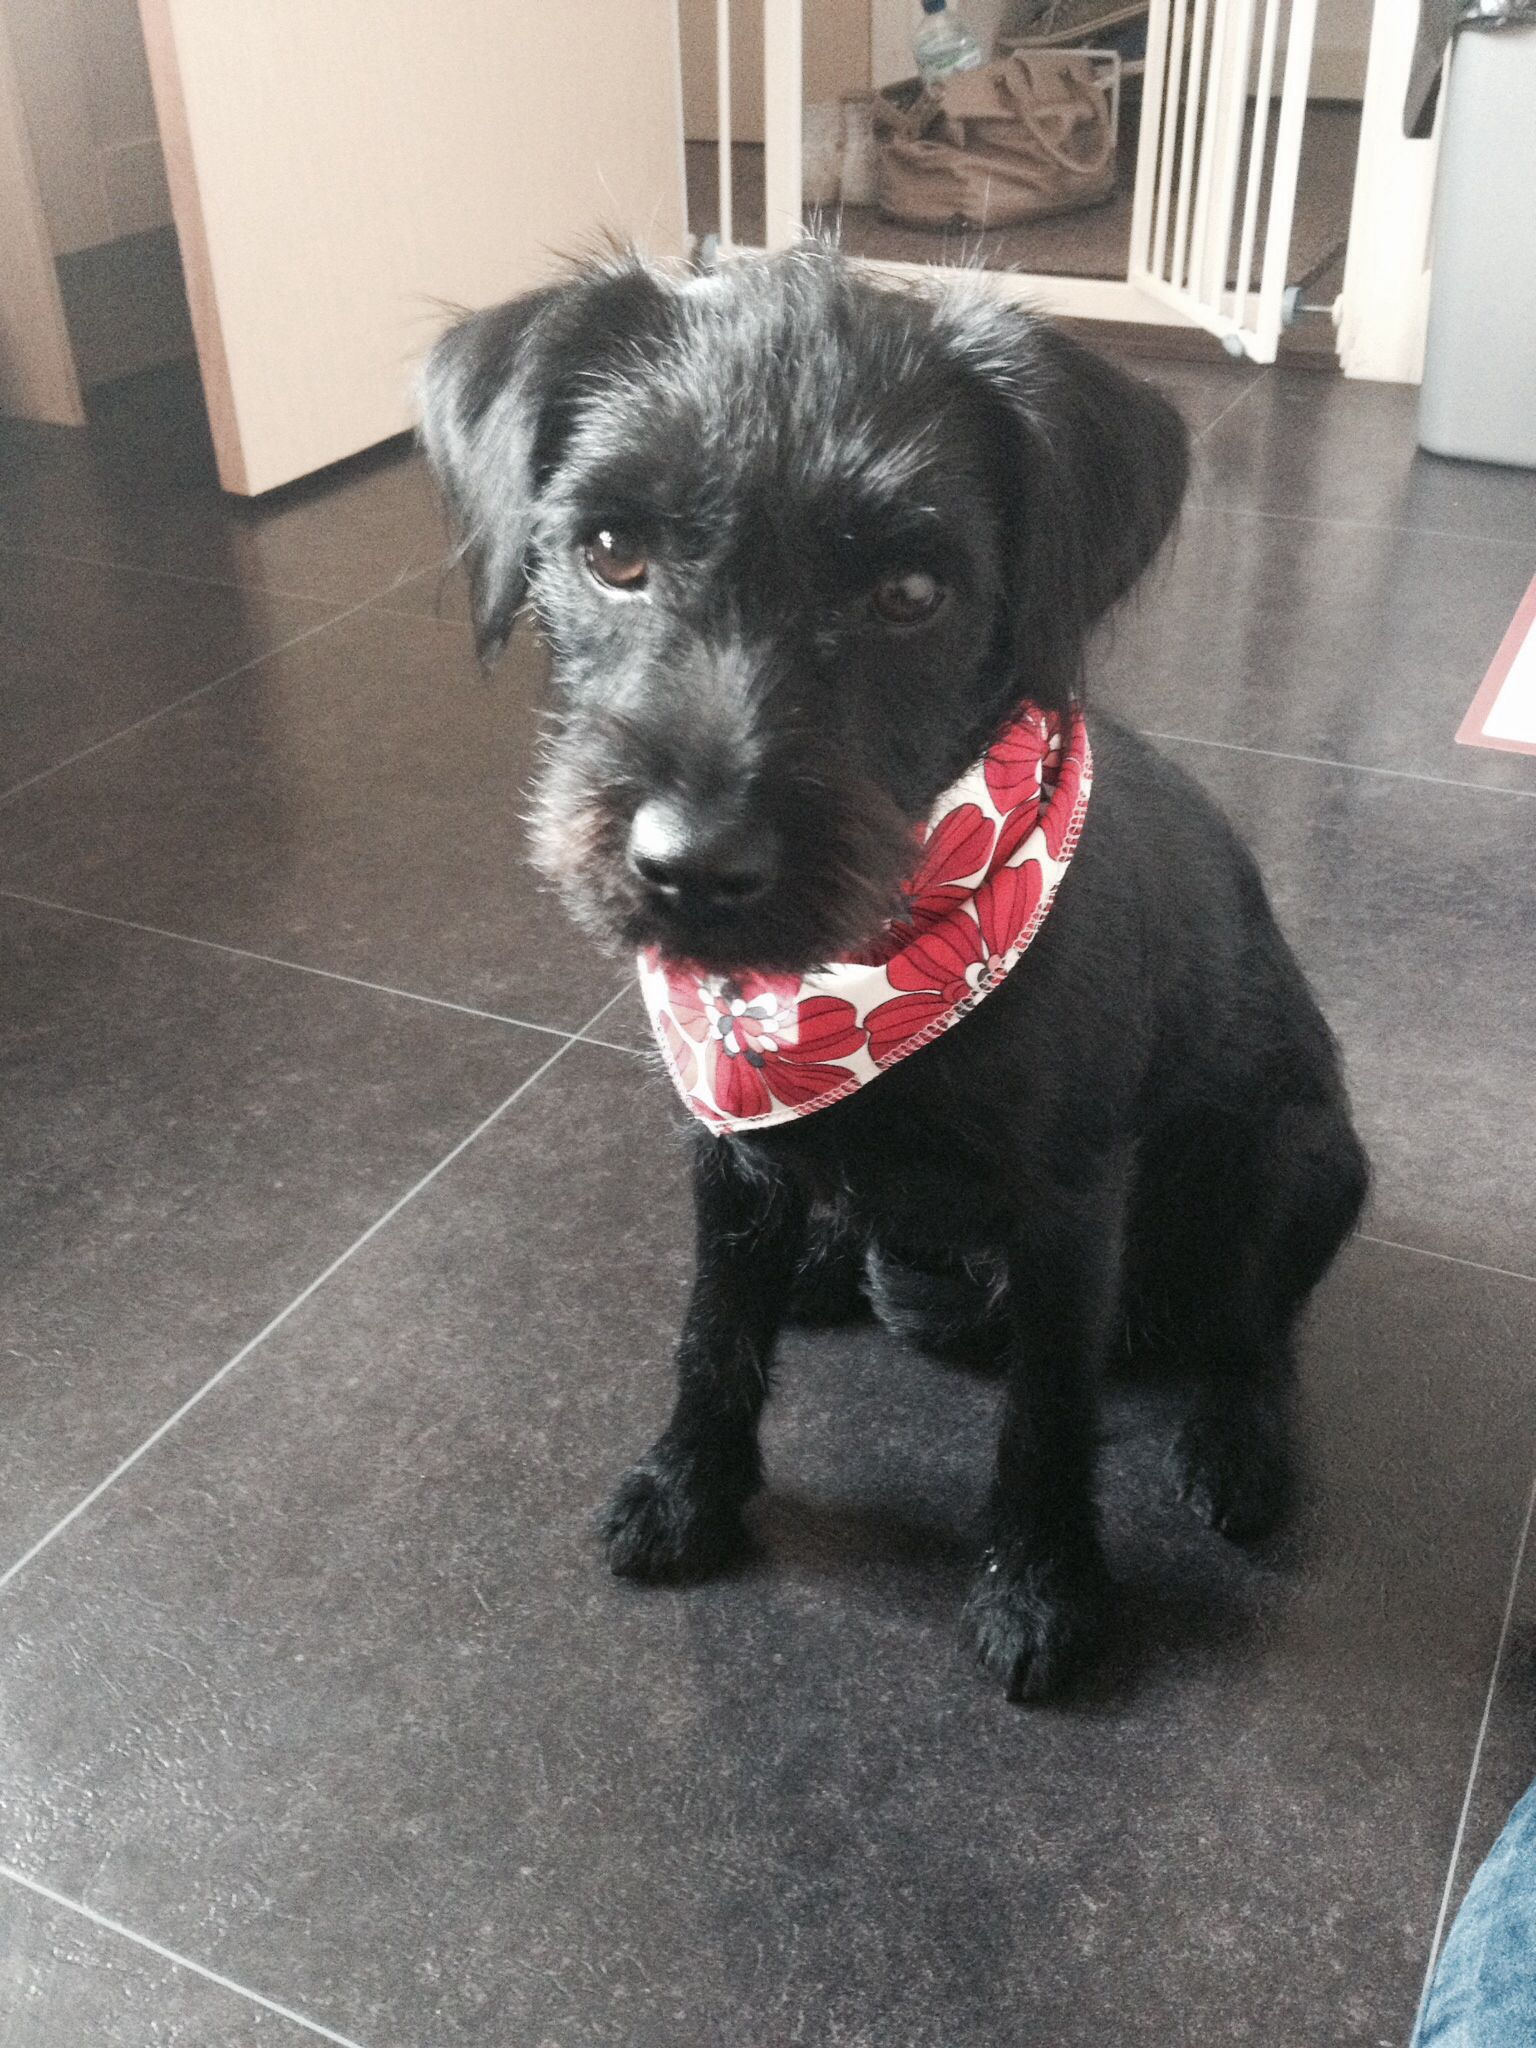 My Gorgeous Patterdale Crossed With A Border Terrier Her Name Is